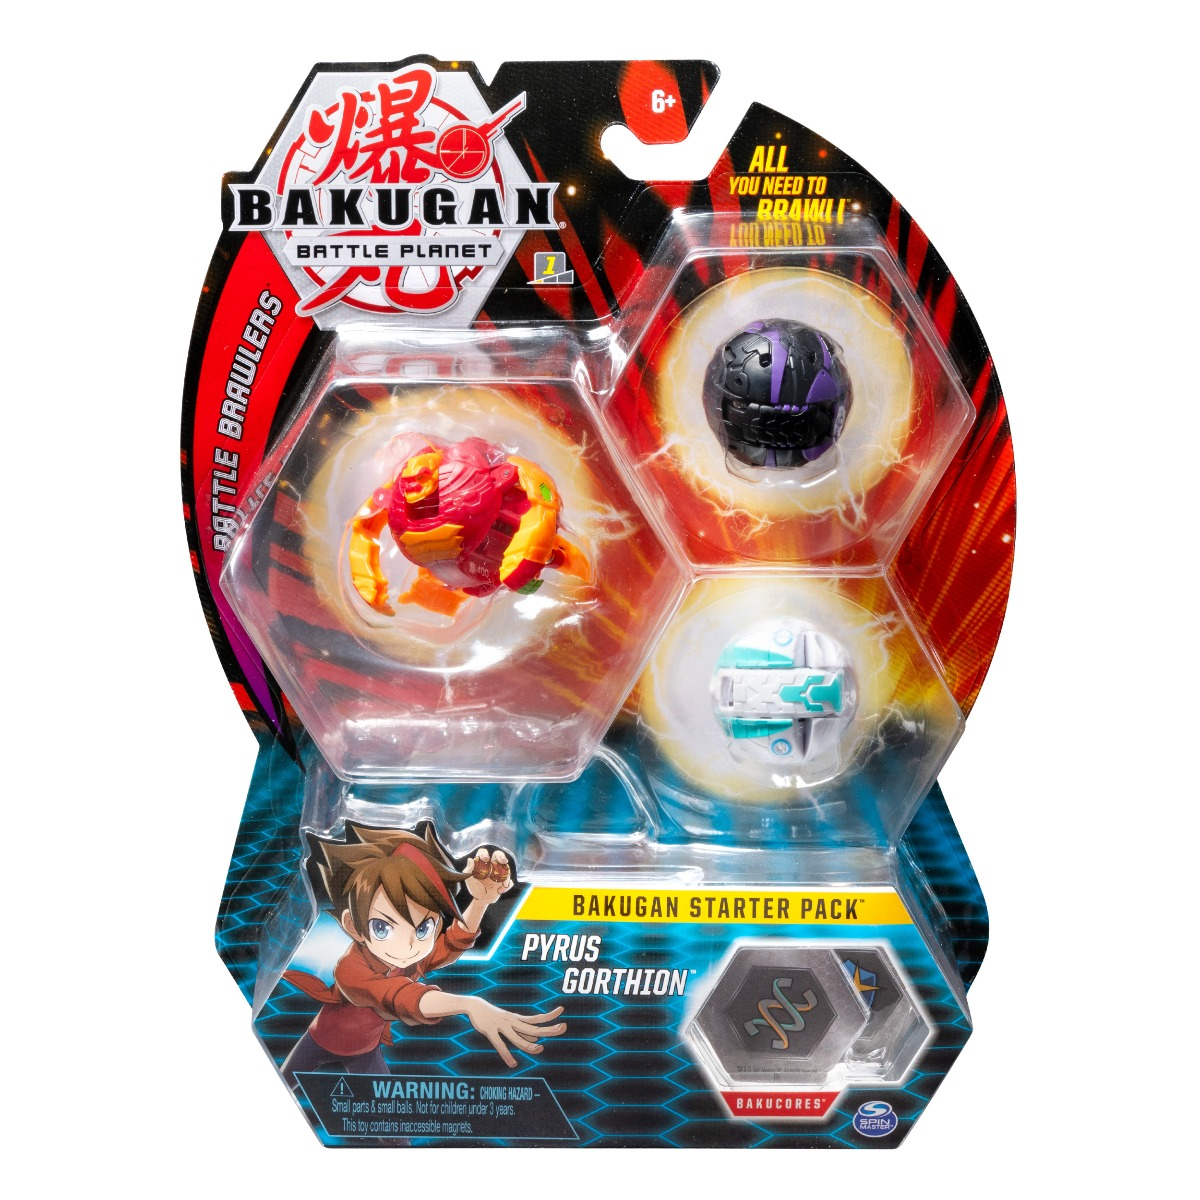 Set Bakugan Battle Planet Starter Pyrus Gorthion, 20108789